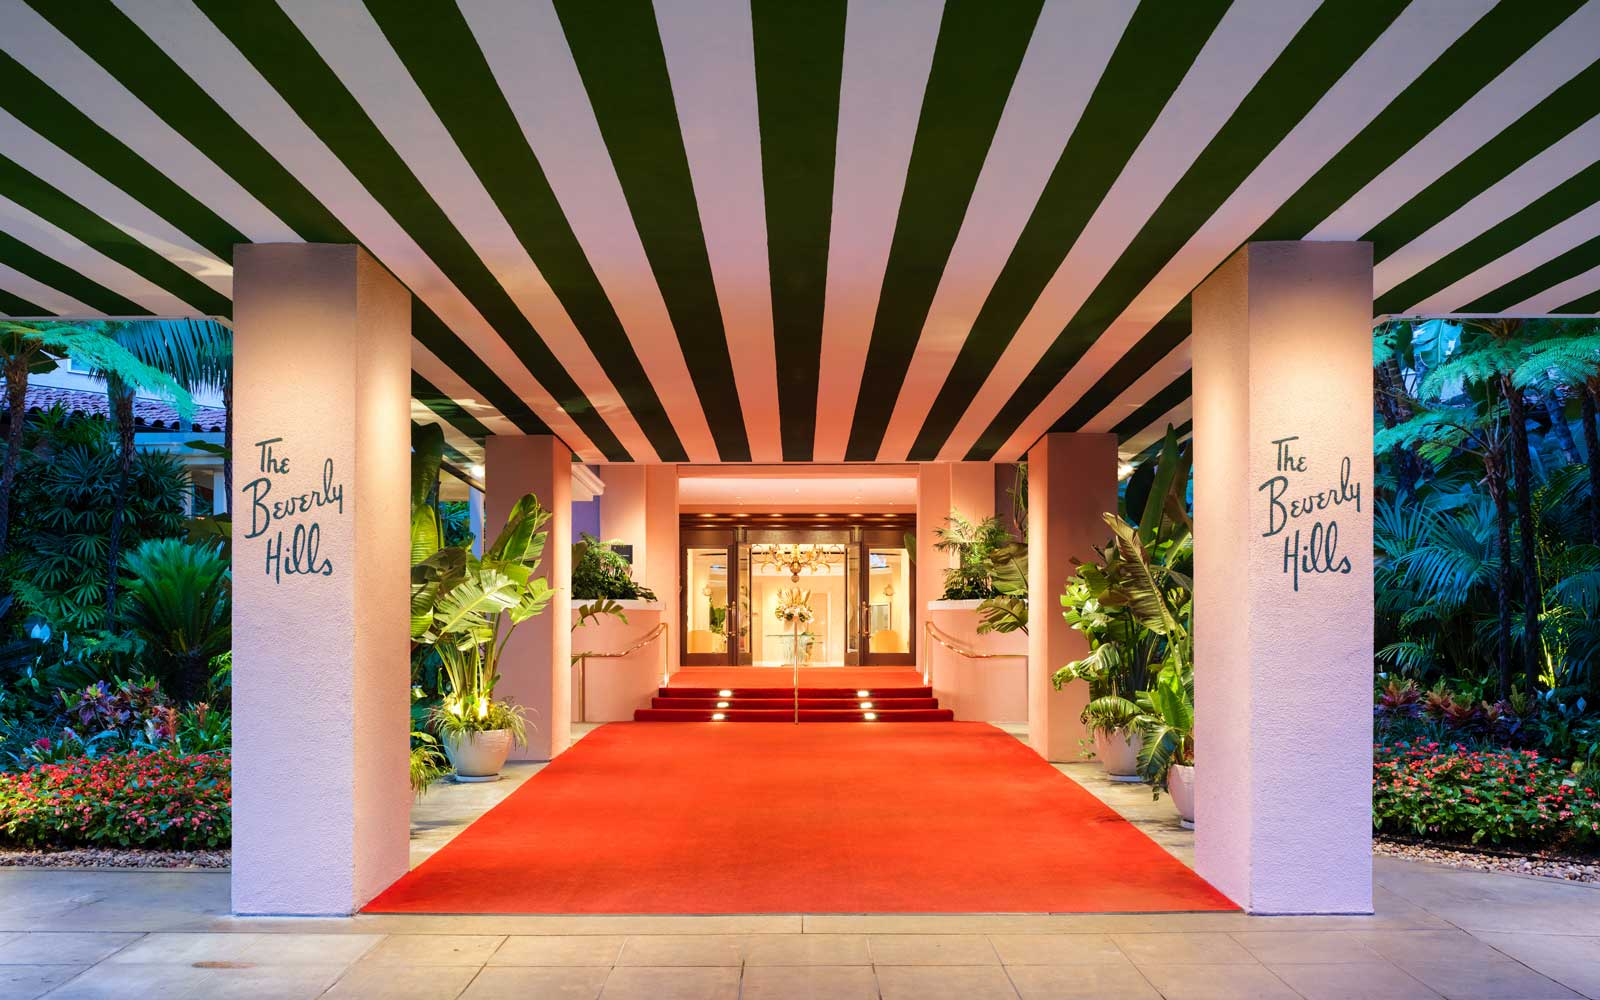 Entrance of the Beverly Hills Hotel in Los Angeles, California